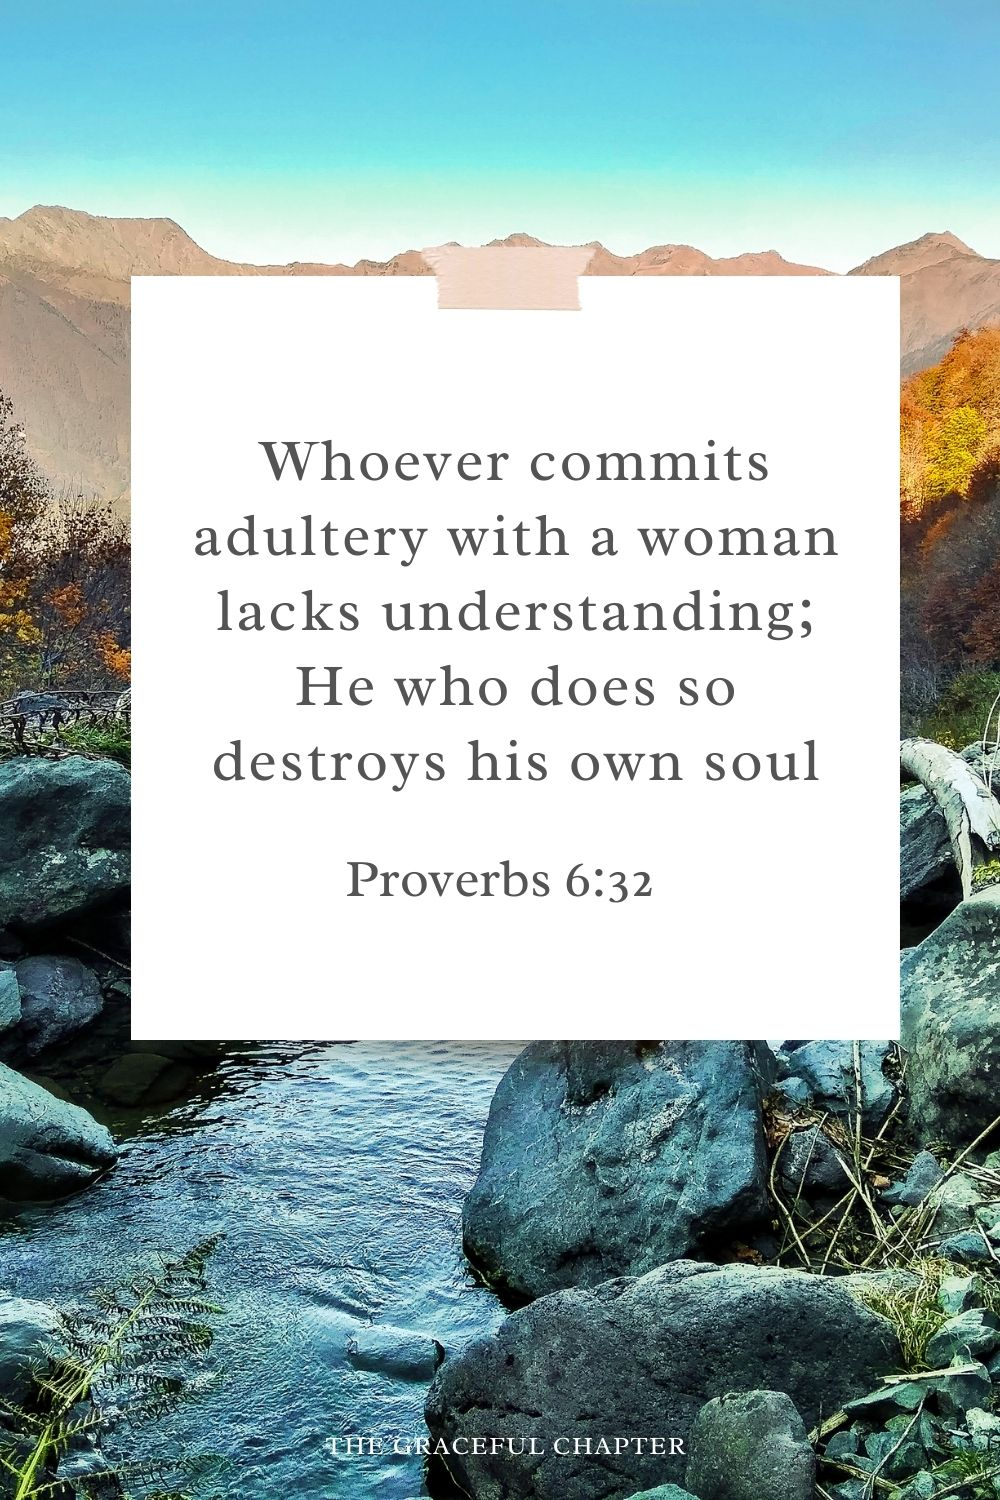 Whoever commits adultery with a woman lacks understanding; He who does so destroys his own soul. Proverbs 6:32